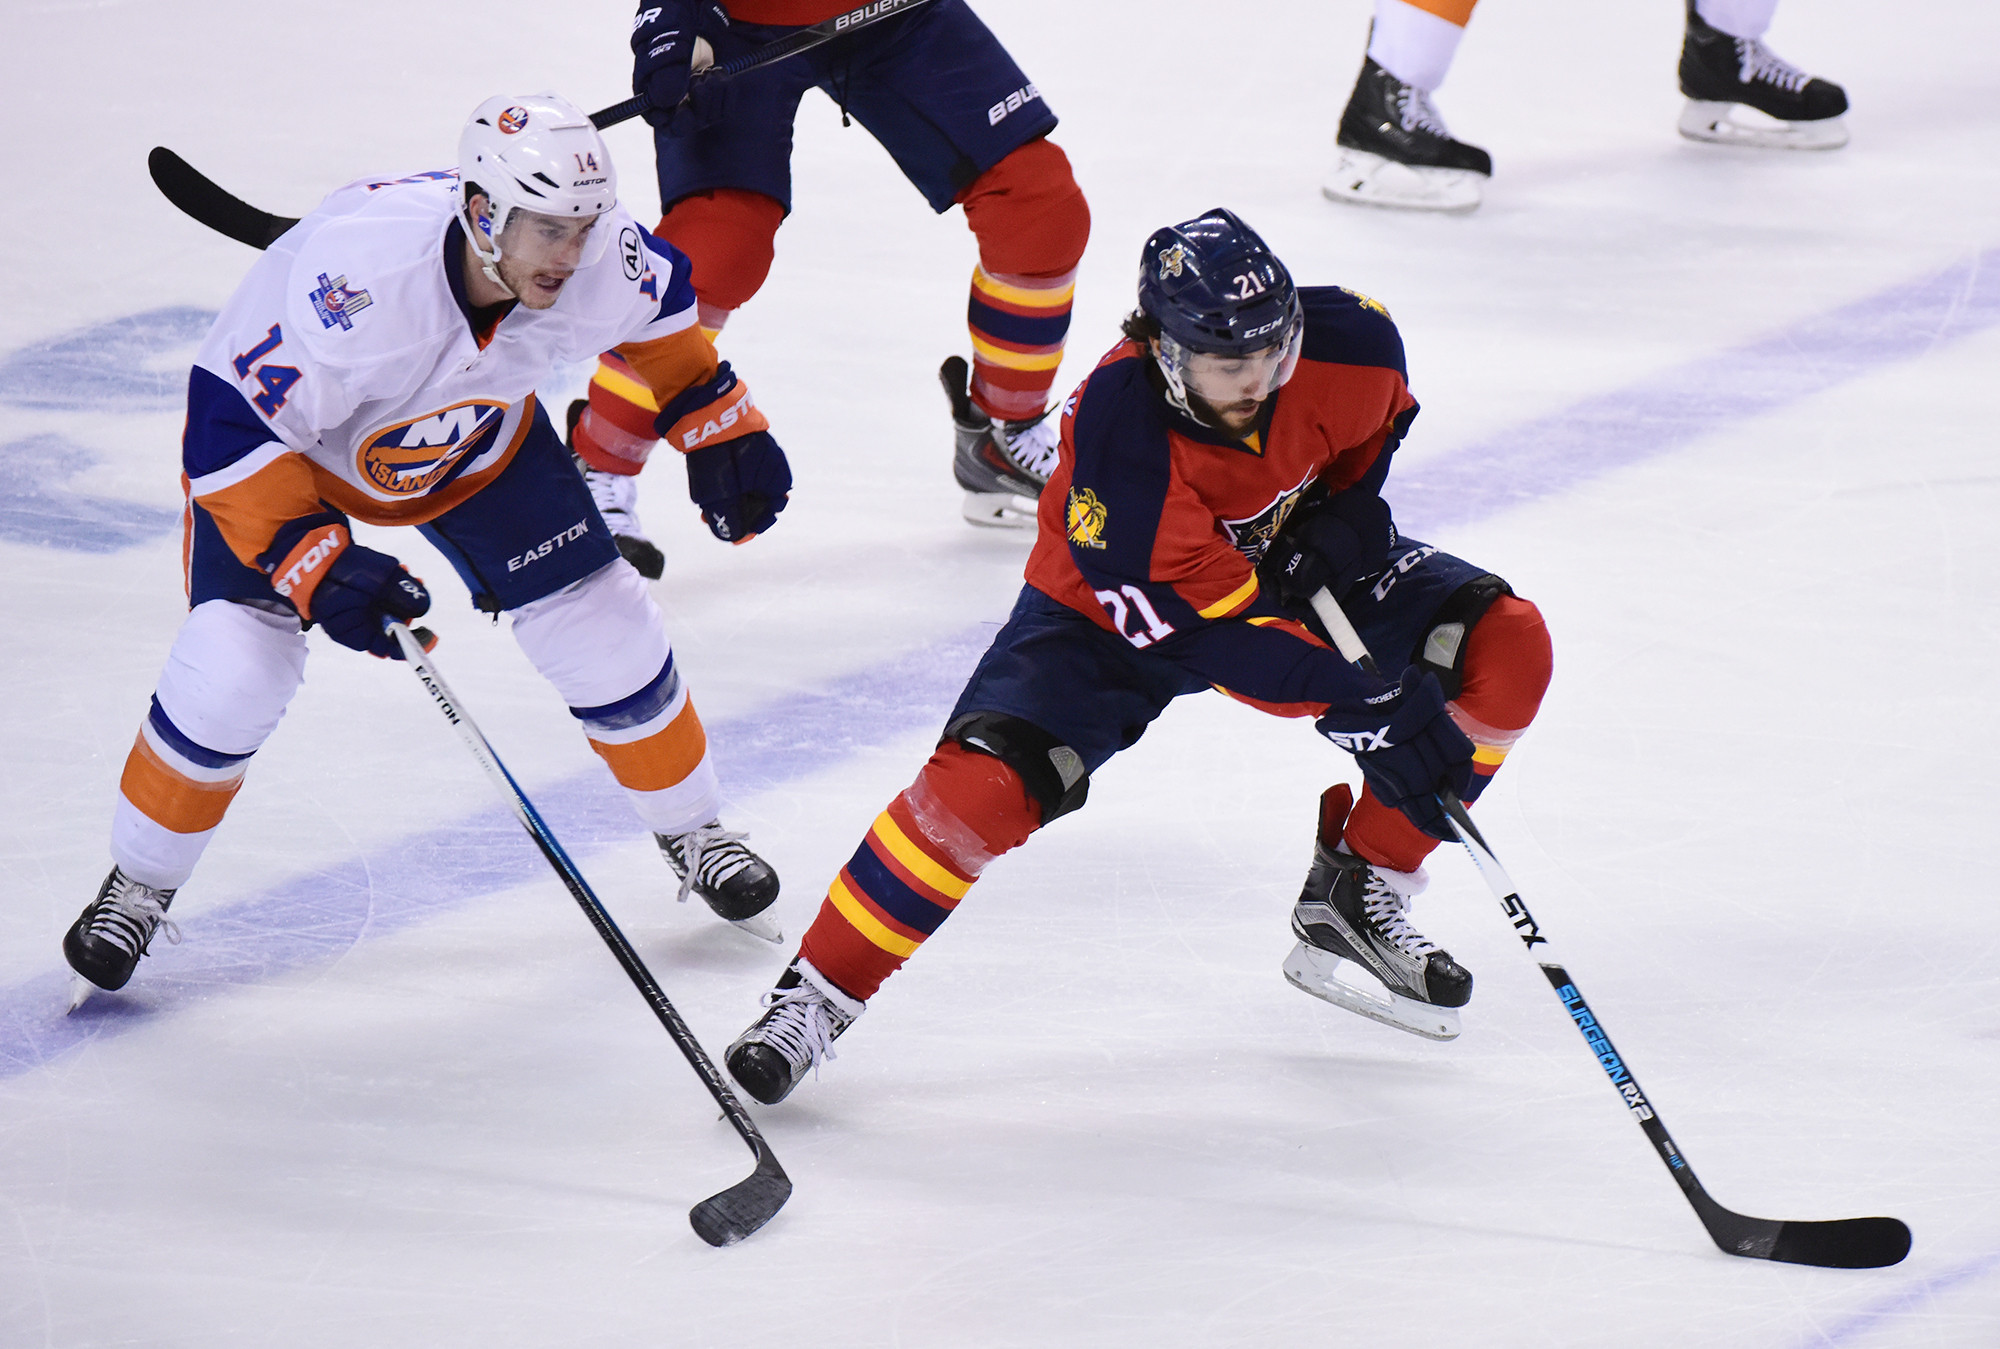 Sfl-panthers-sign-center-vincent-trocheck-for-6-years-at-28-5-million-20160702